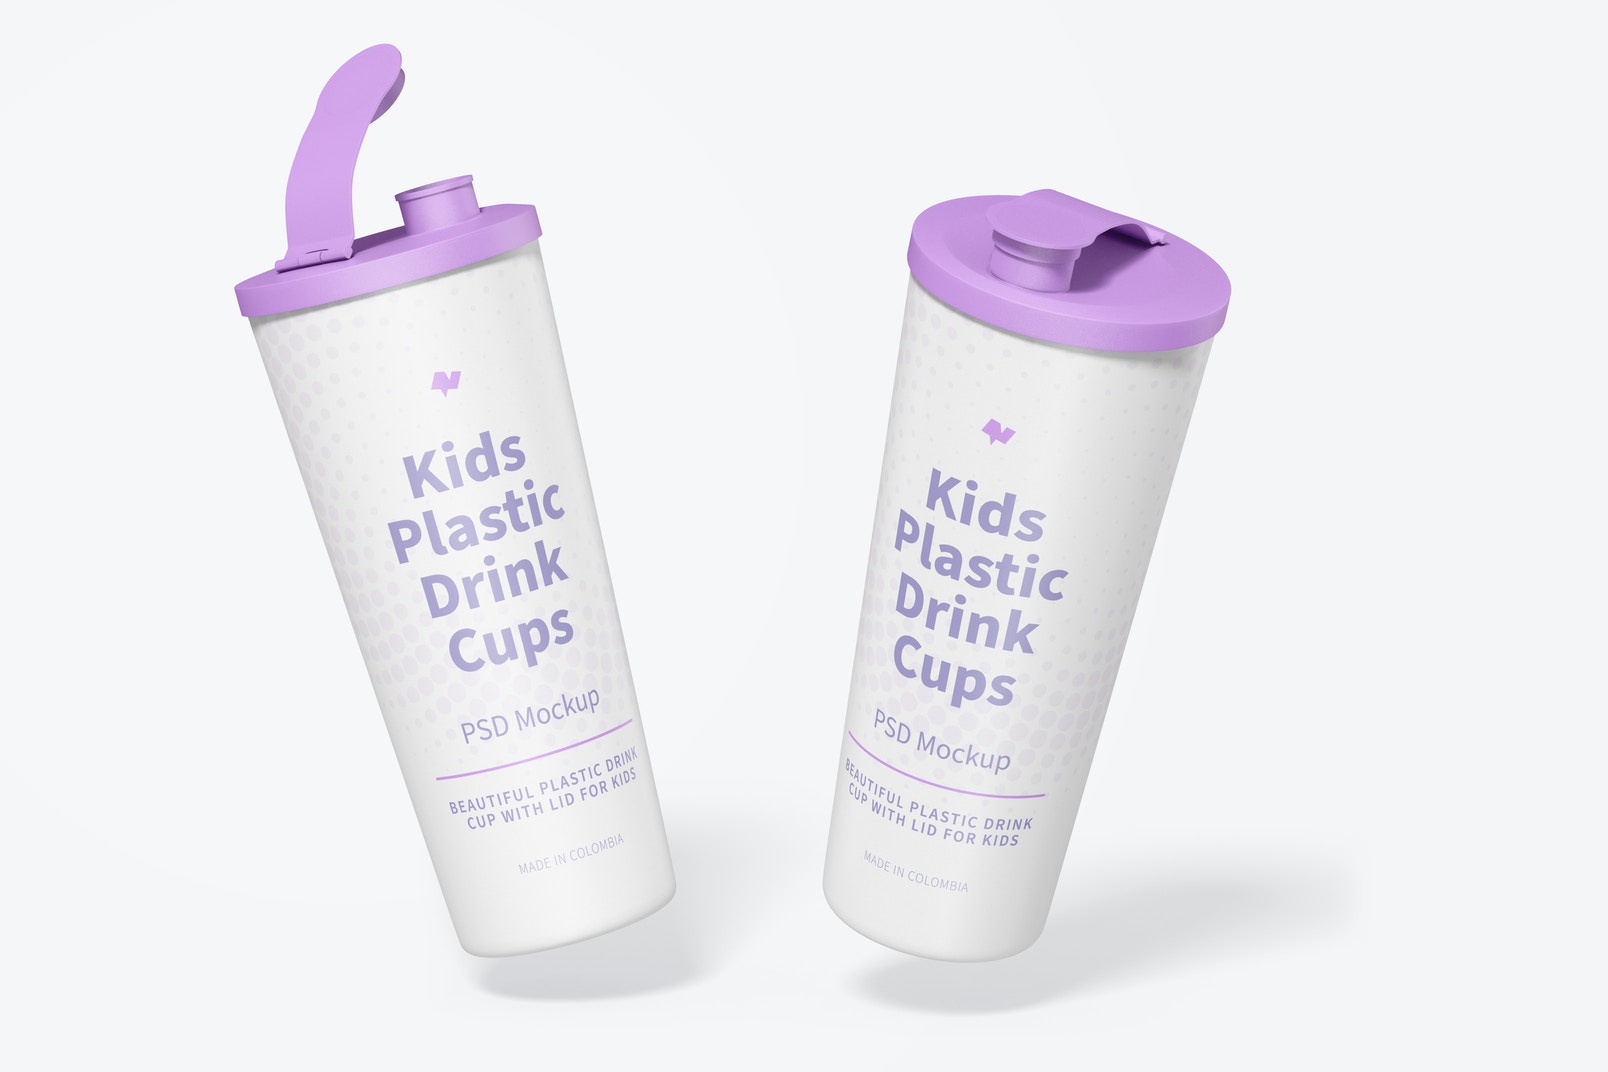 Kids Plastic Drink Cup With Lid Mockup, Falling